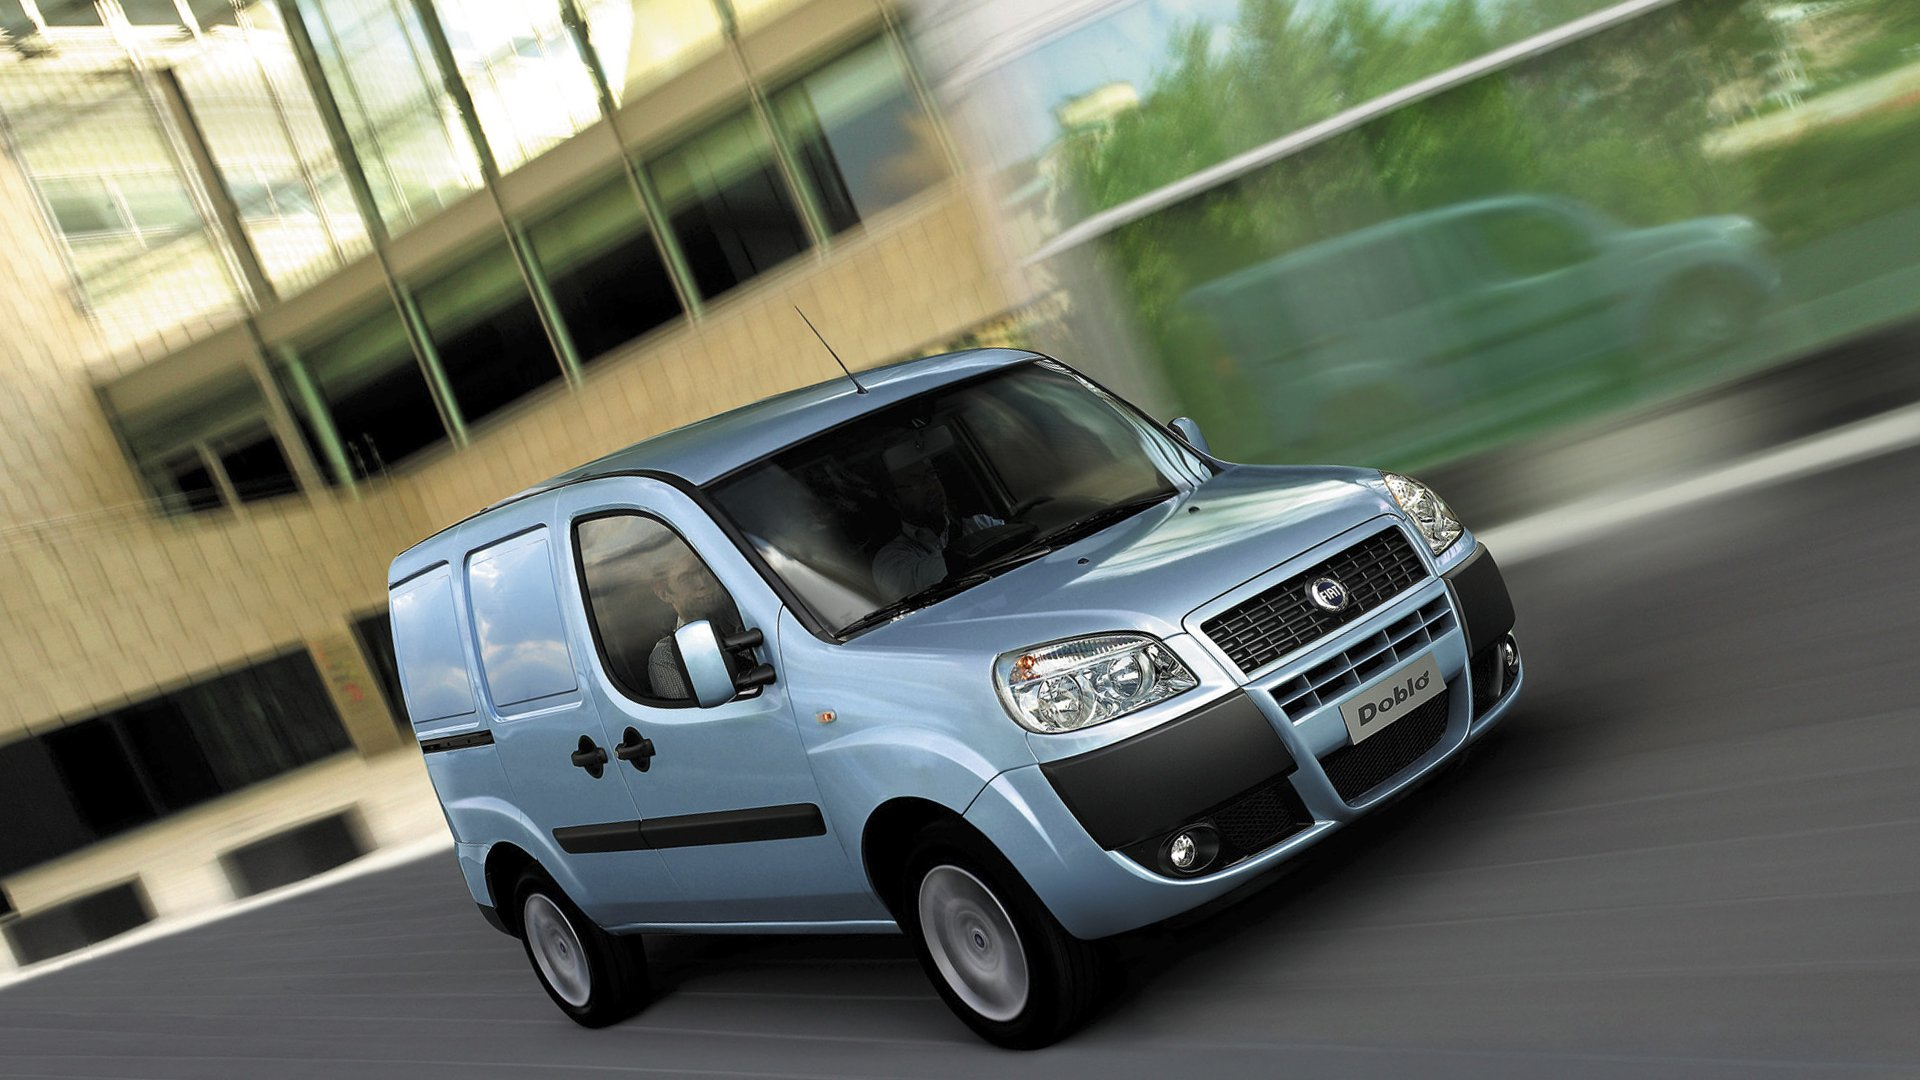 New 2019 FIAT Doblo Exterior Changes